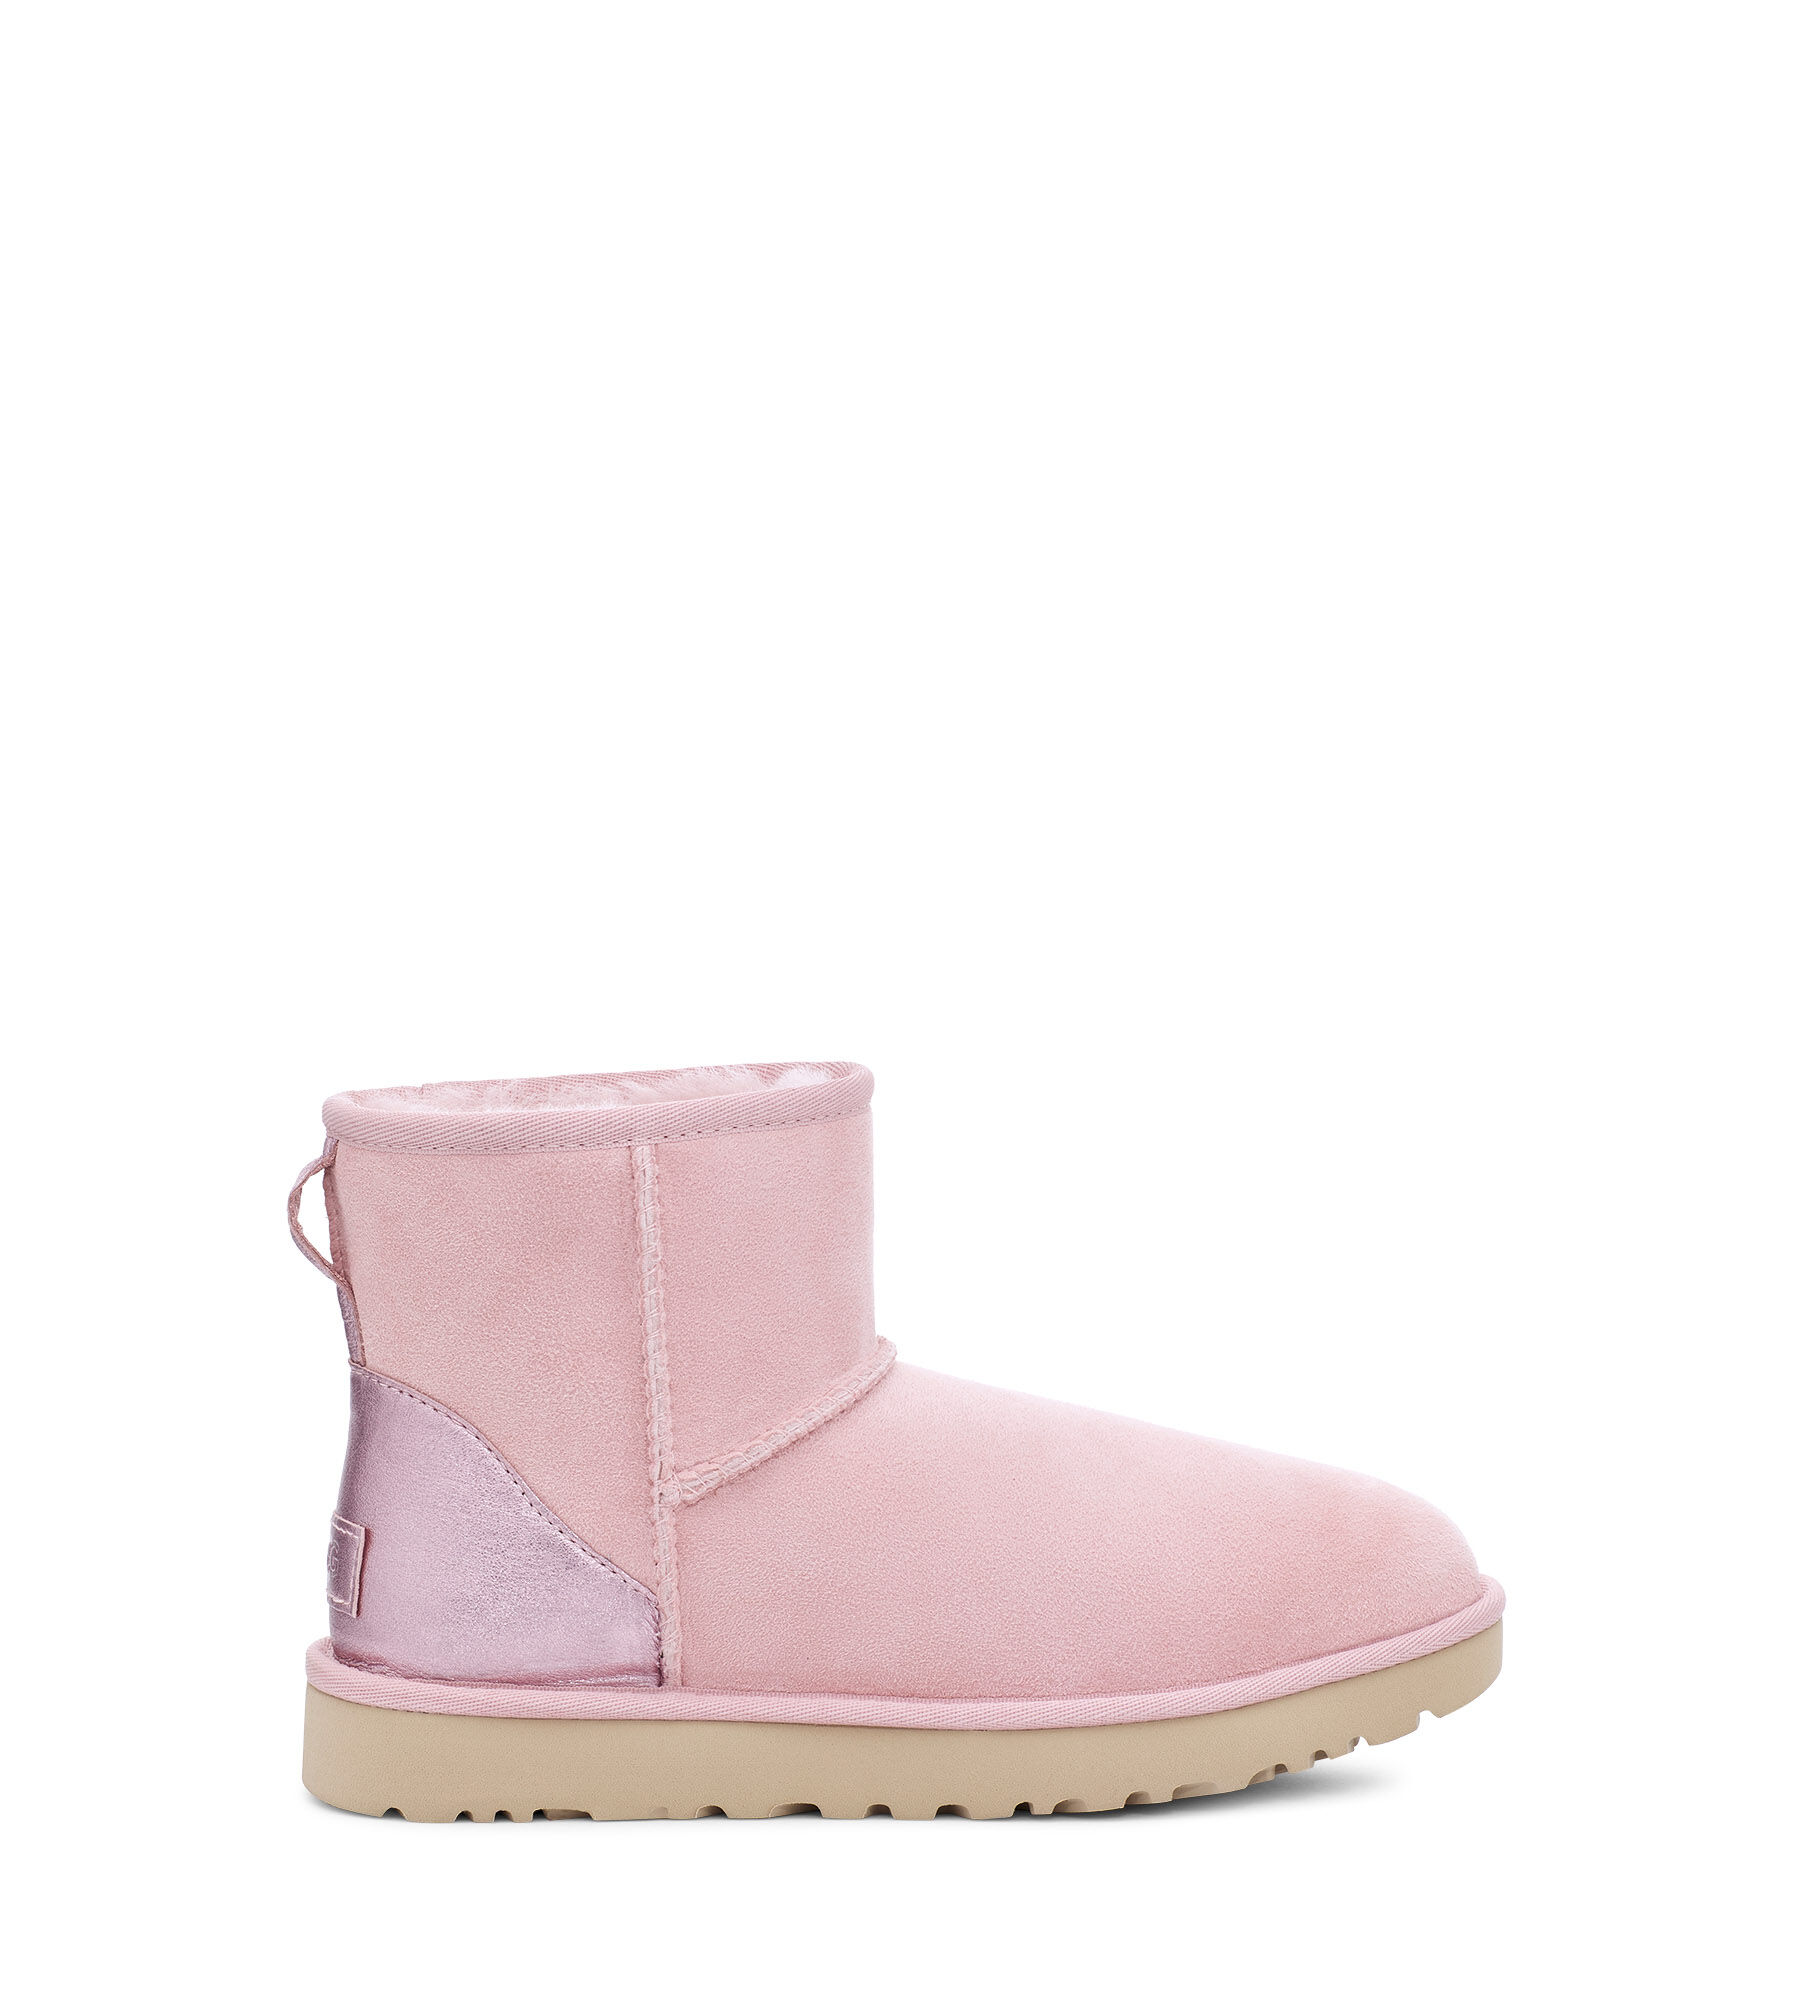 Women's Pink Boots   UGG® Official Site